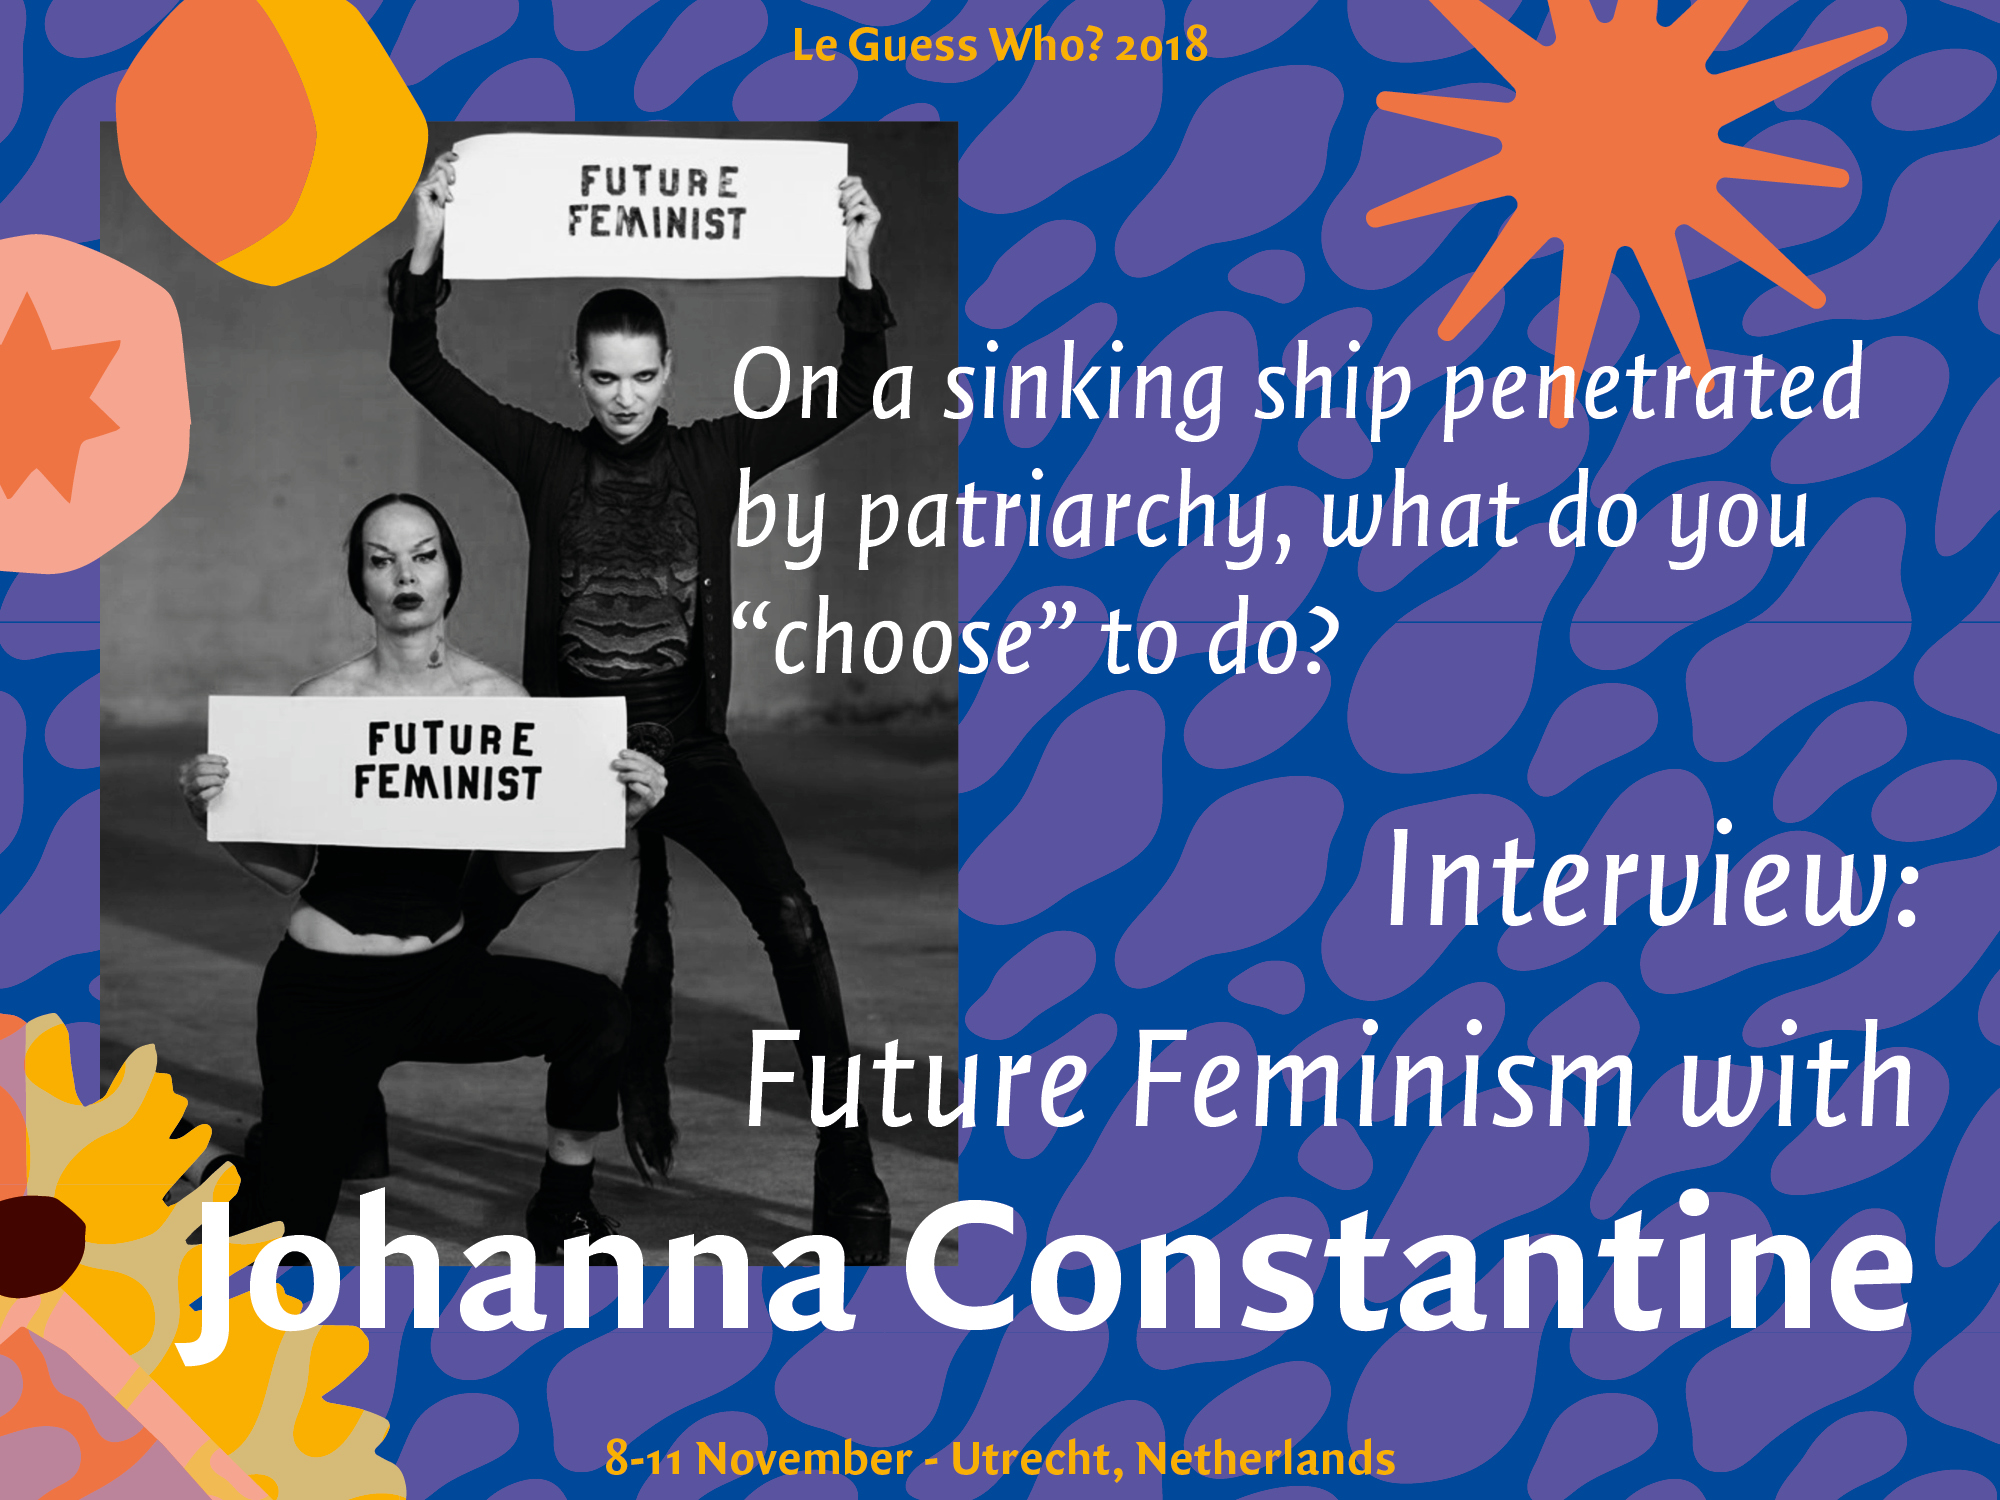 Interview: Future Feminism with Johanna Constantine